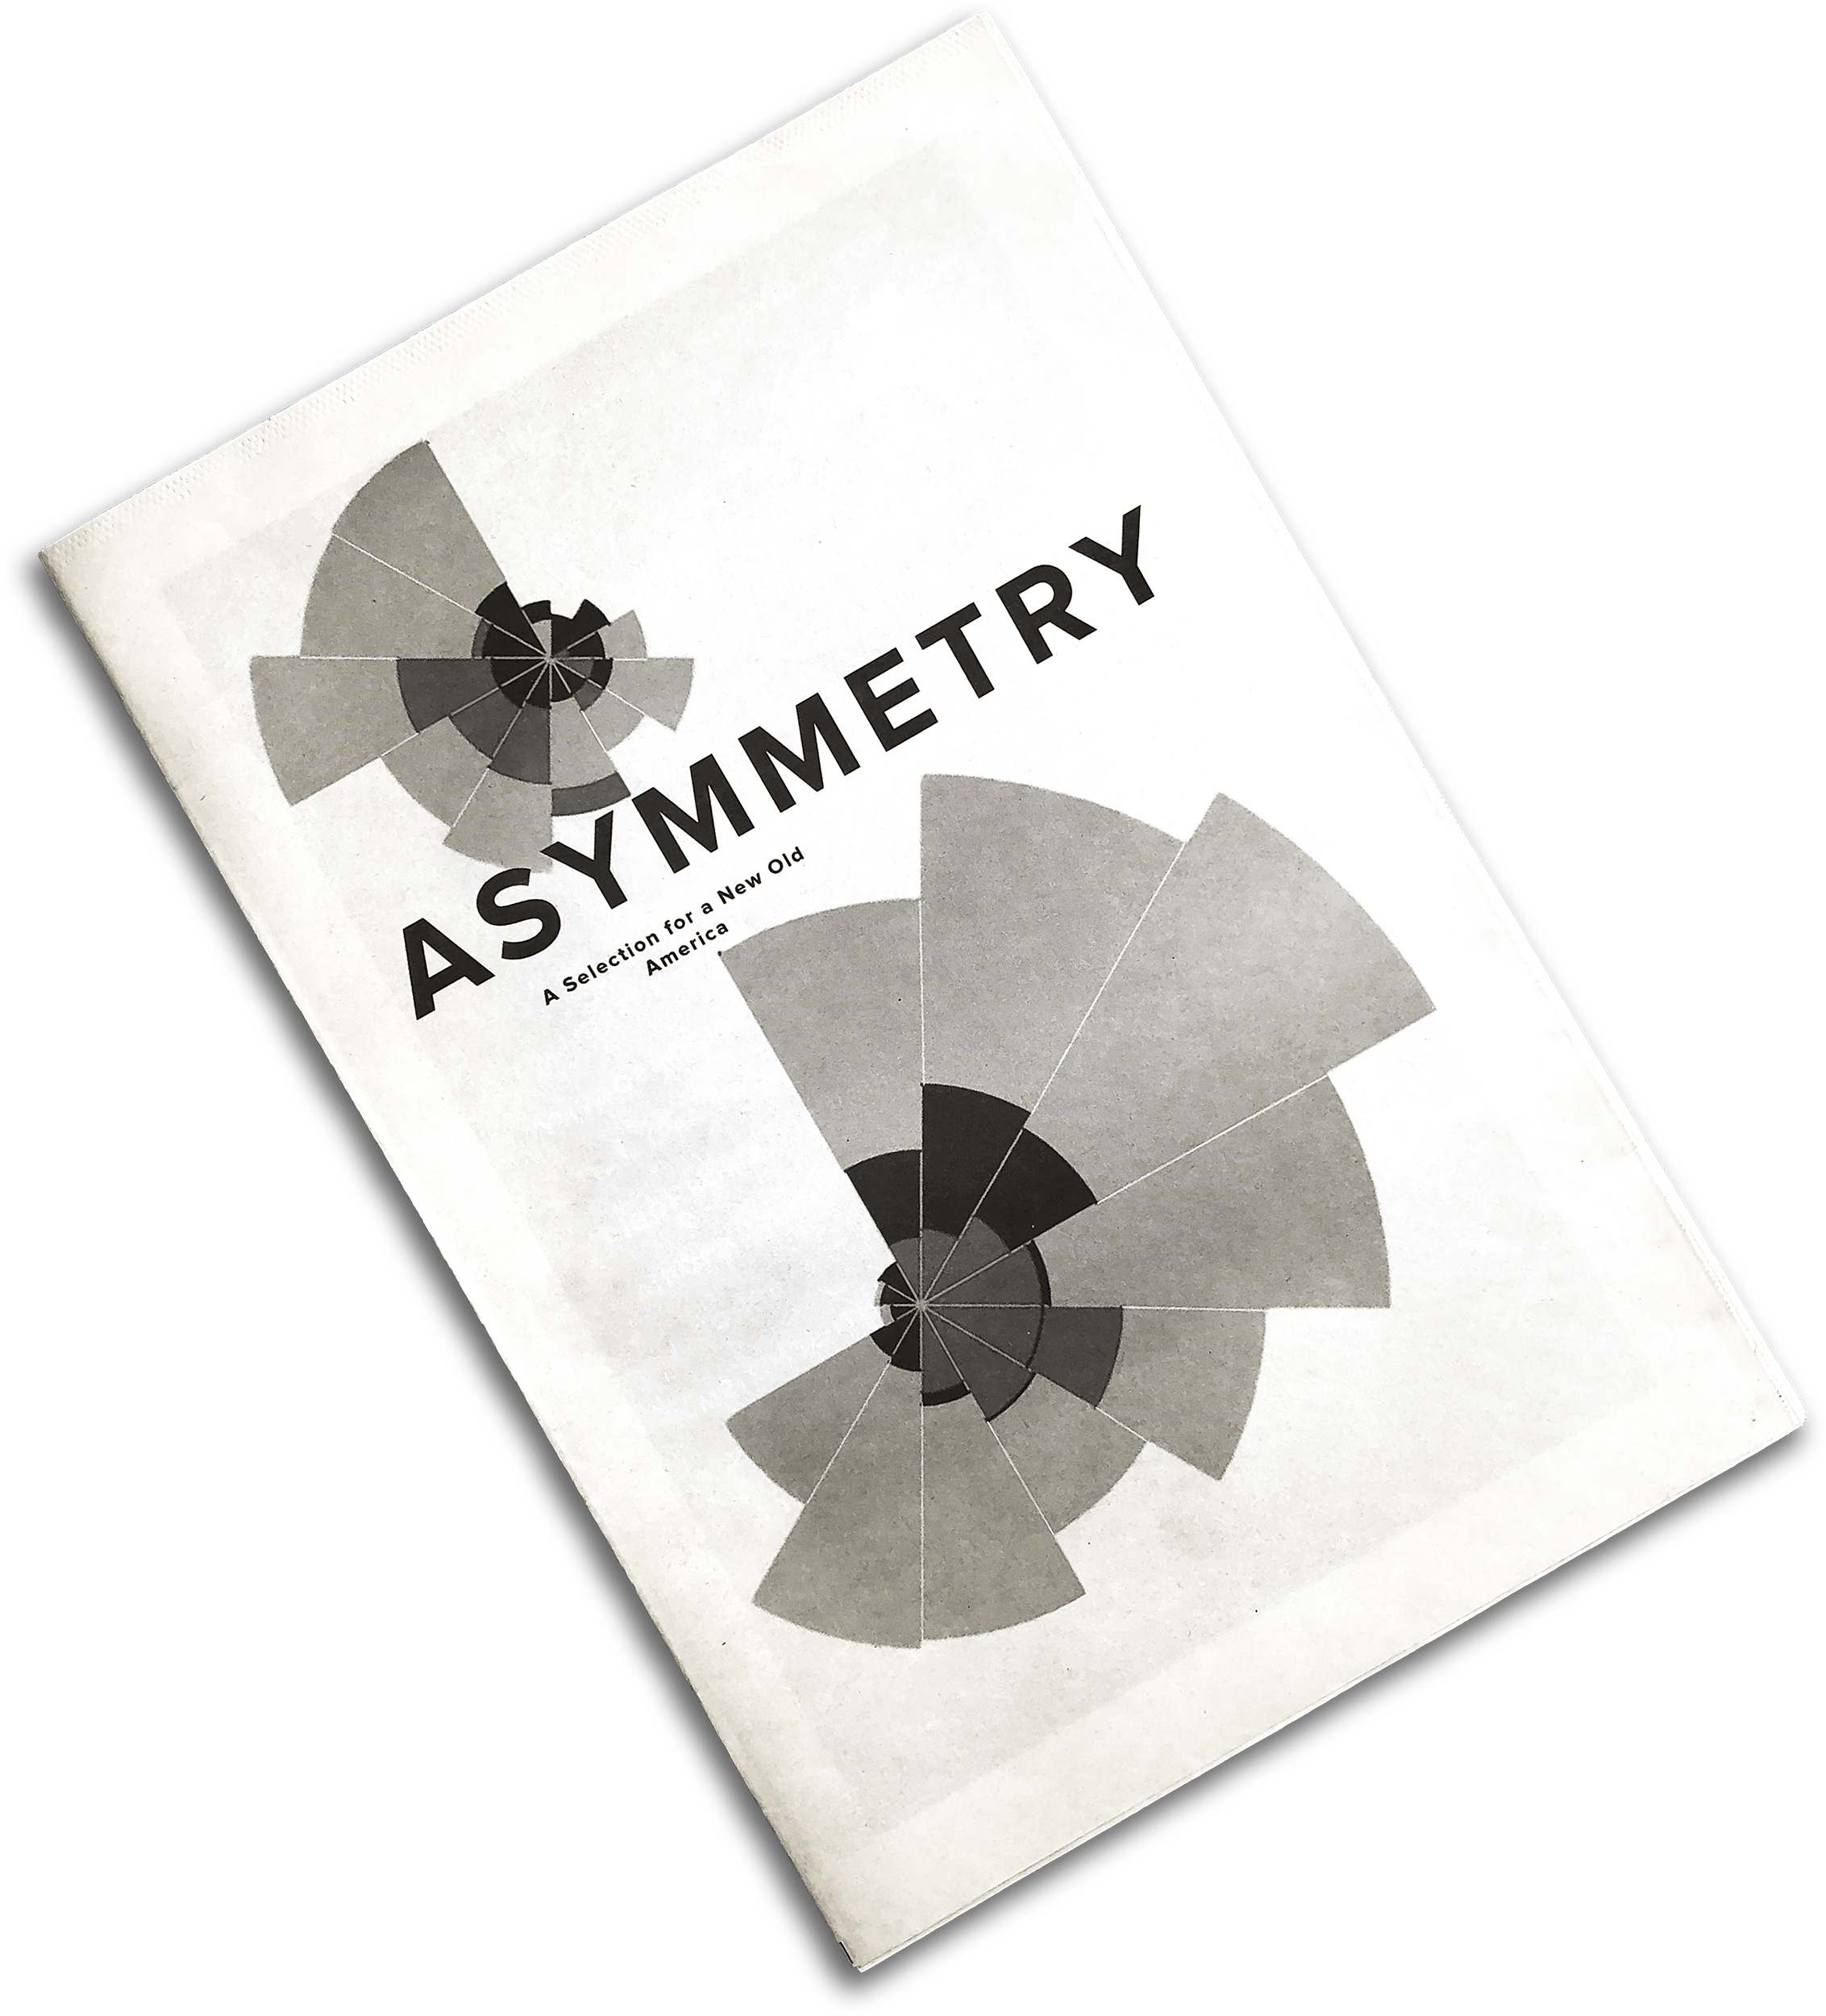 Asymmetry I: A New Old America - View more here ➝